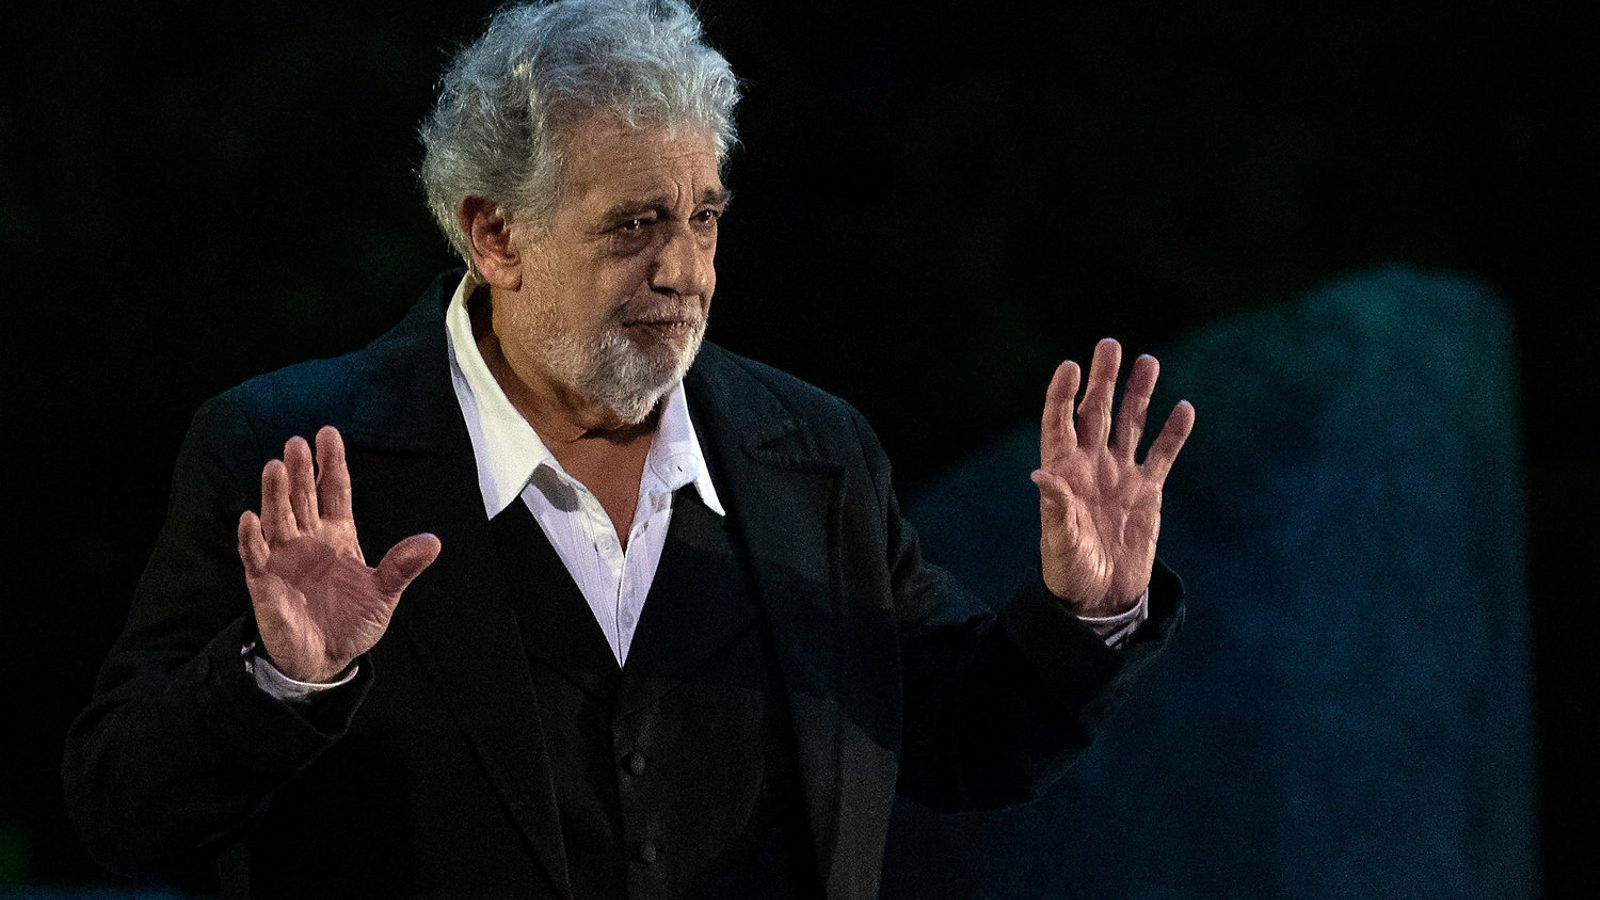 Plácido Domingo, acusat d'assetjament sexual